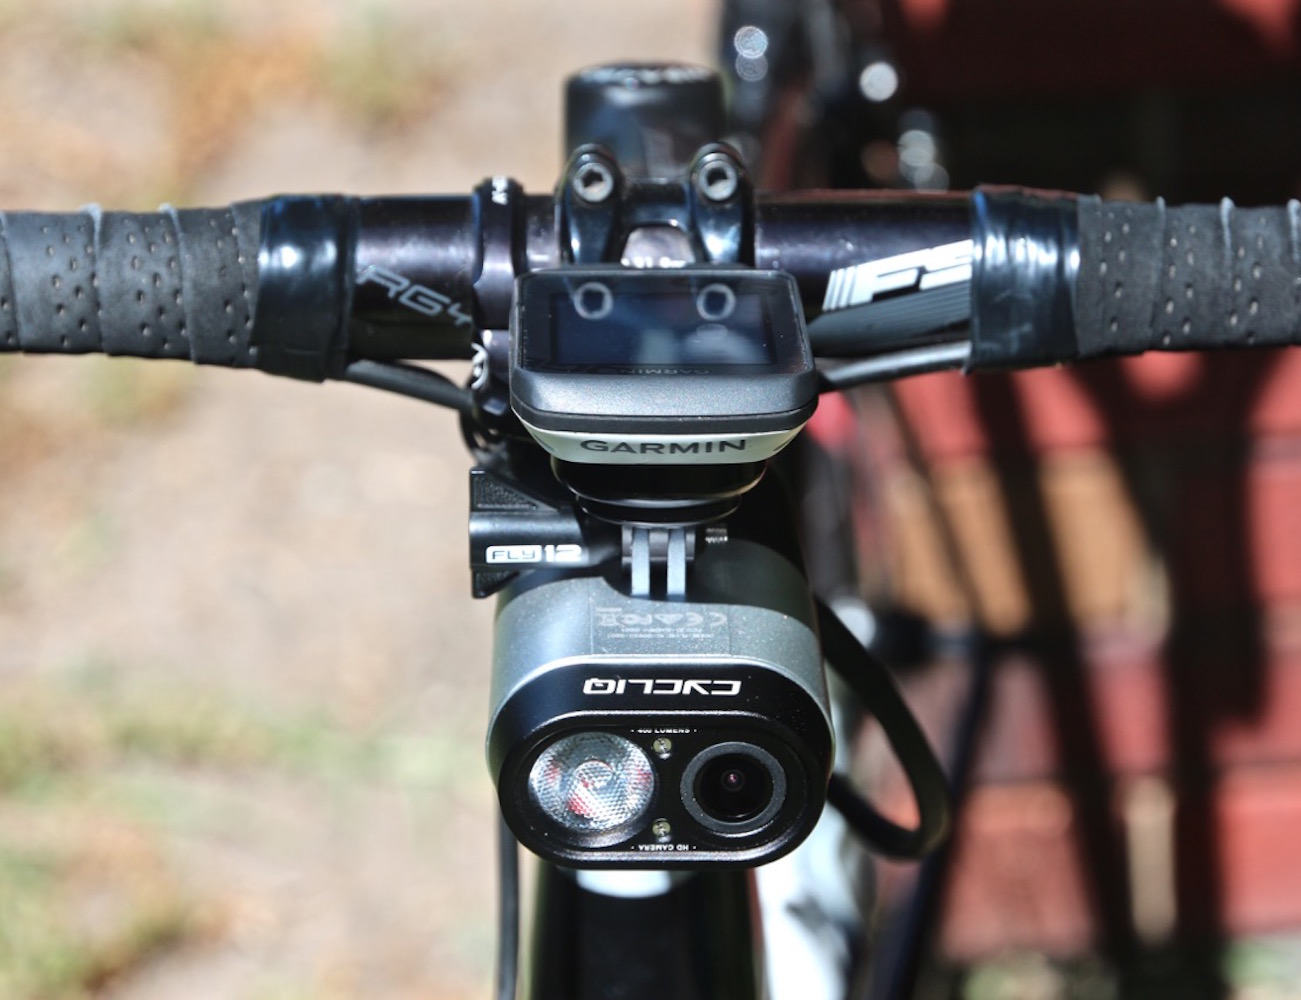 Cycliq Fly12 Camera and Bike Light